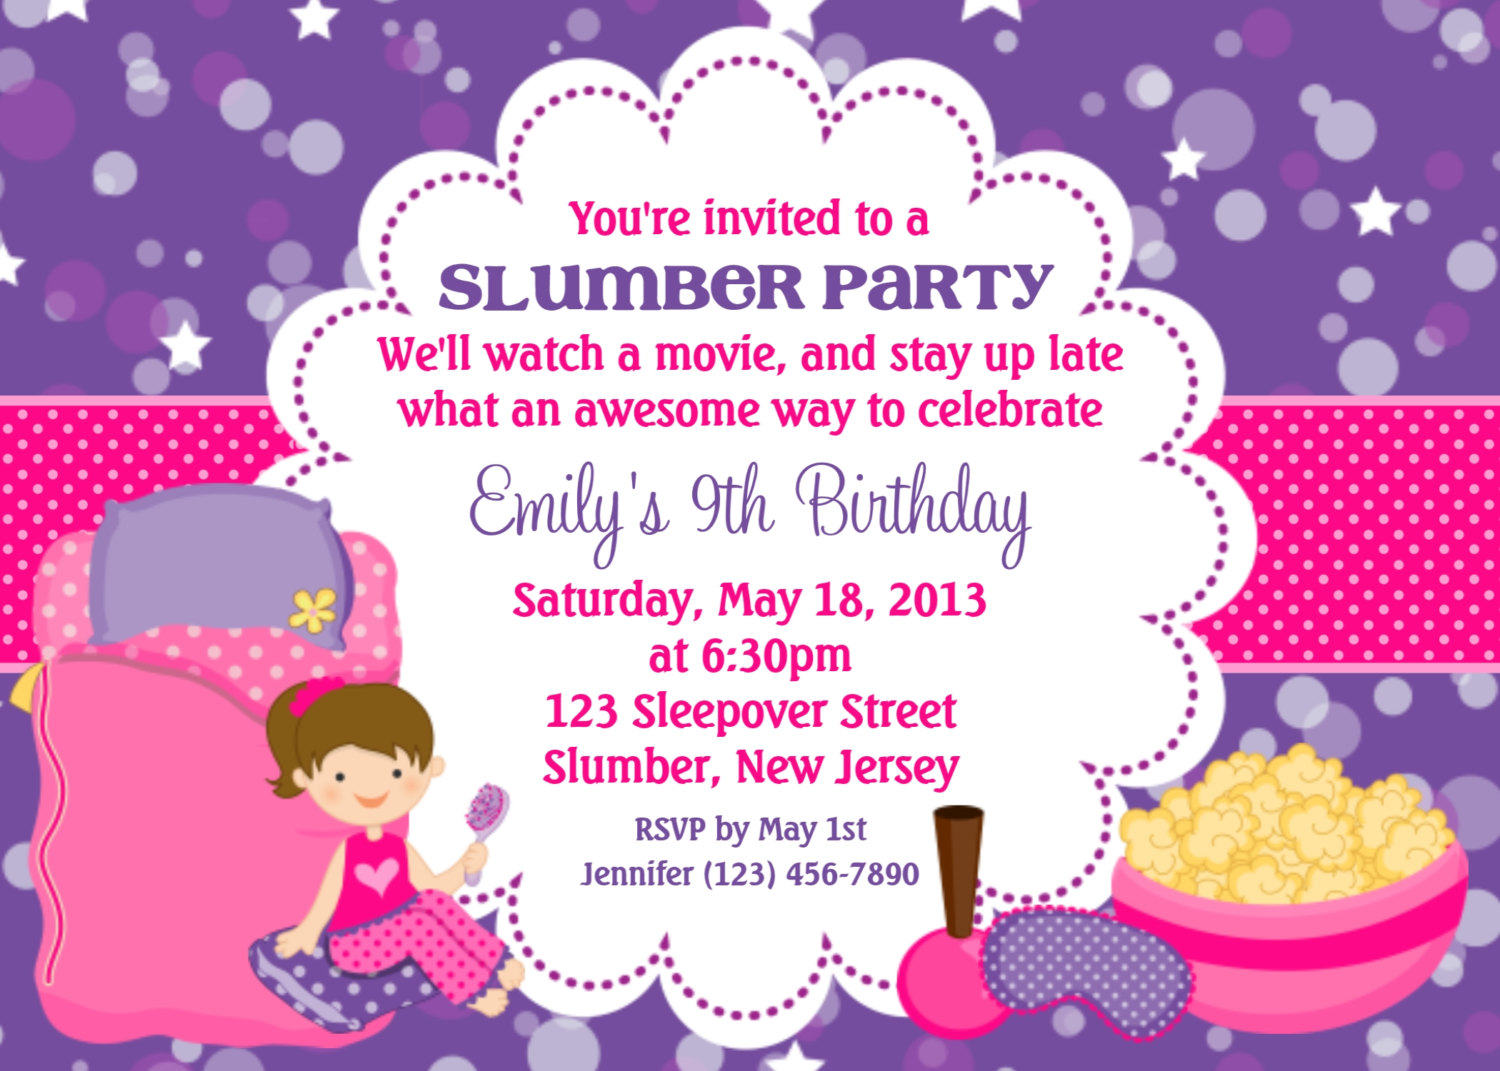 Examples of informal invitation cards sparkling english 6a00d83452237c69e2010537179122970b 156 birthday party invitation quotes stopboris Images